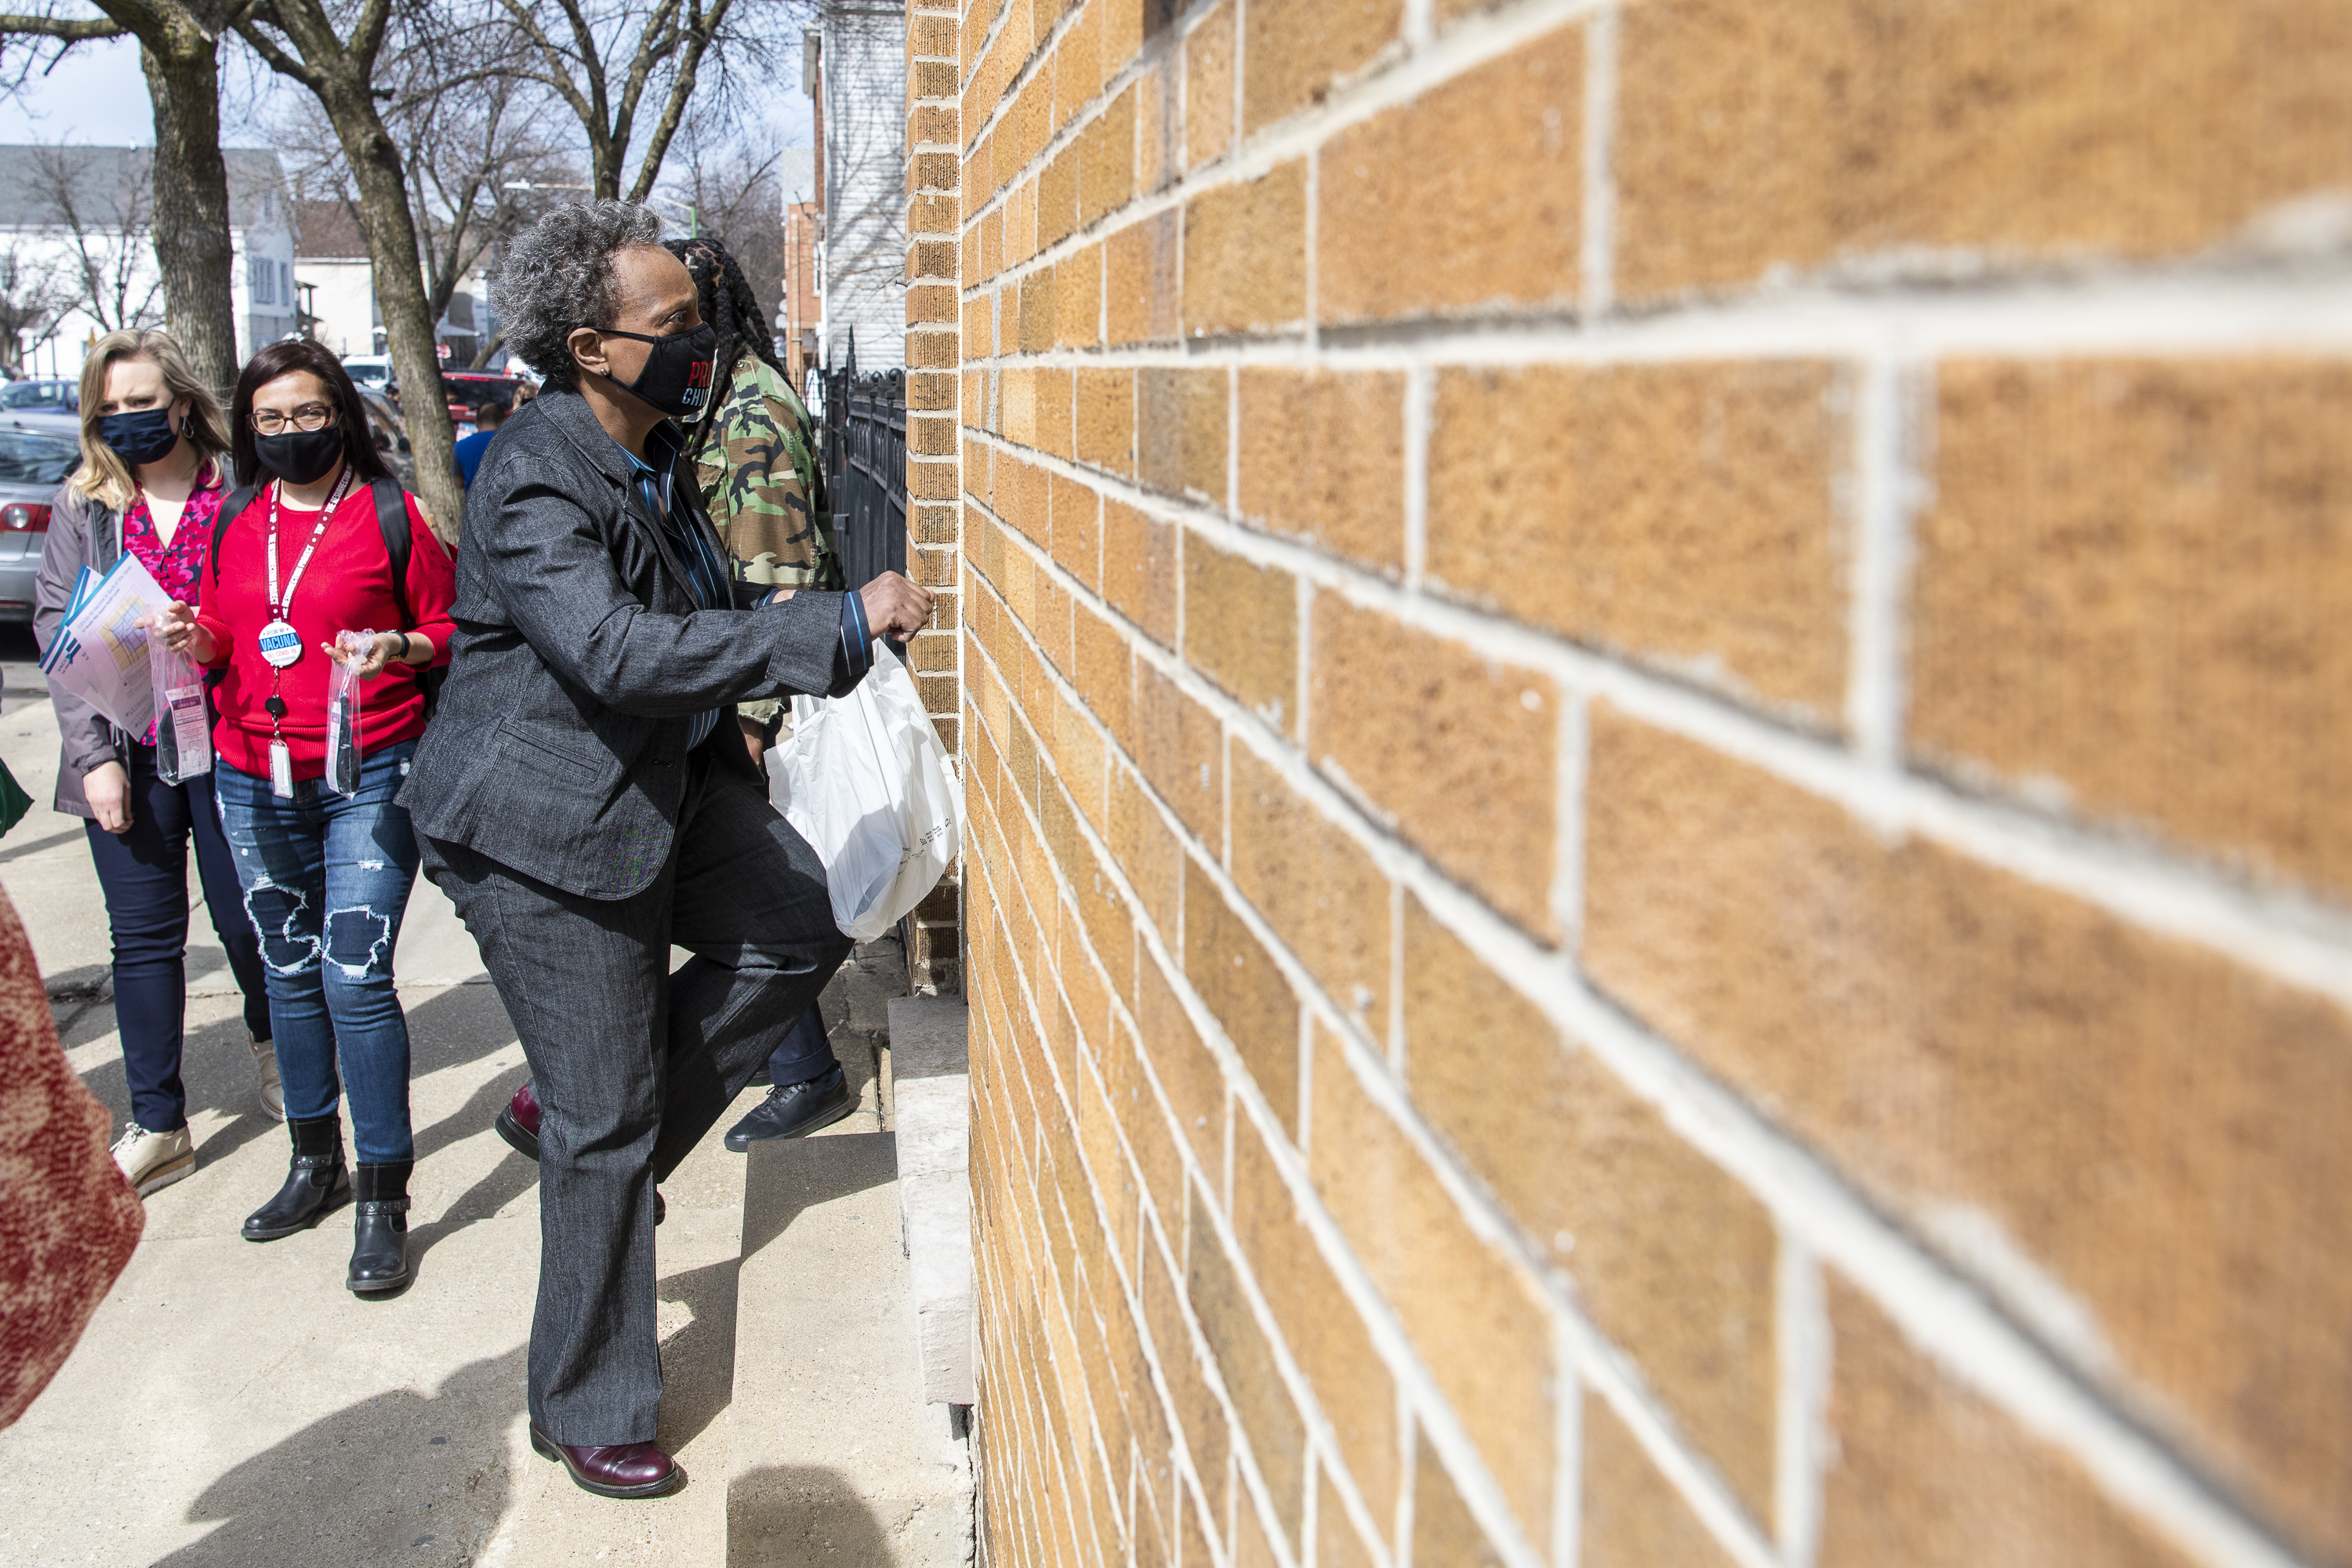 Mayor Lori Lightfoot, pictured in March knocking on the door of a Back of the Yards home to share information about COVID-19 vaccines. The city is now offering in-home vaccinations to all residents 12 or older.